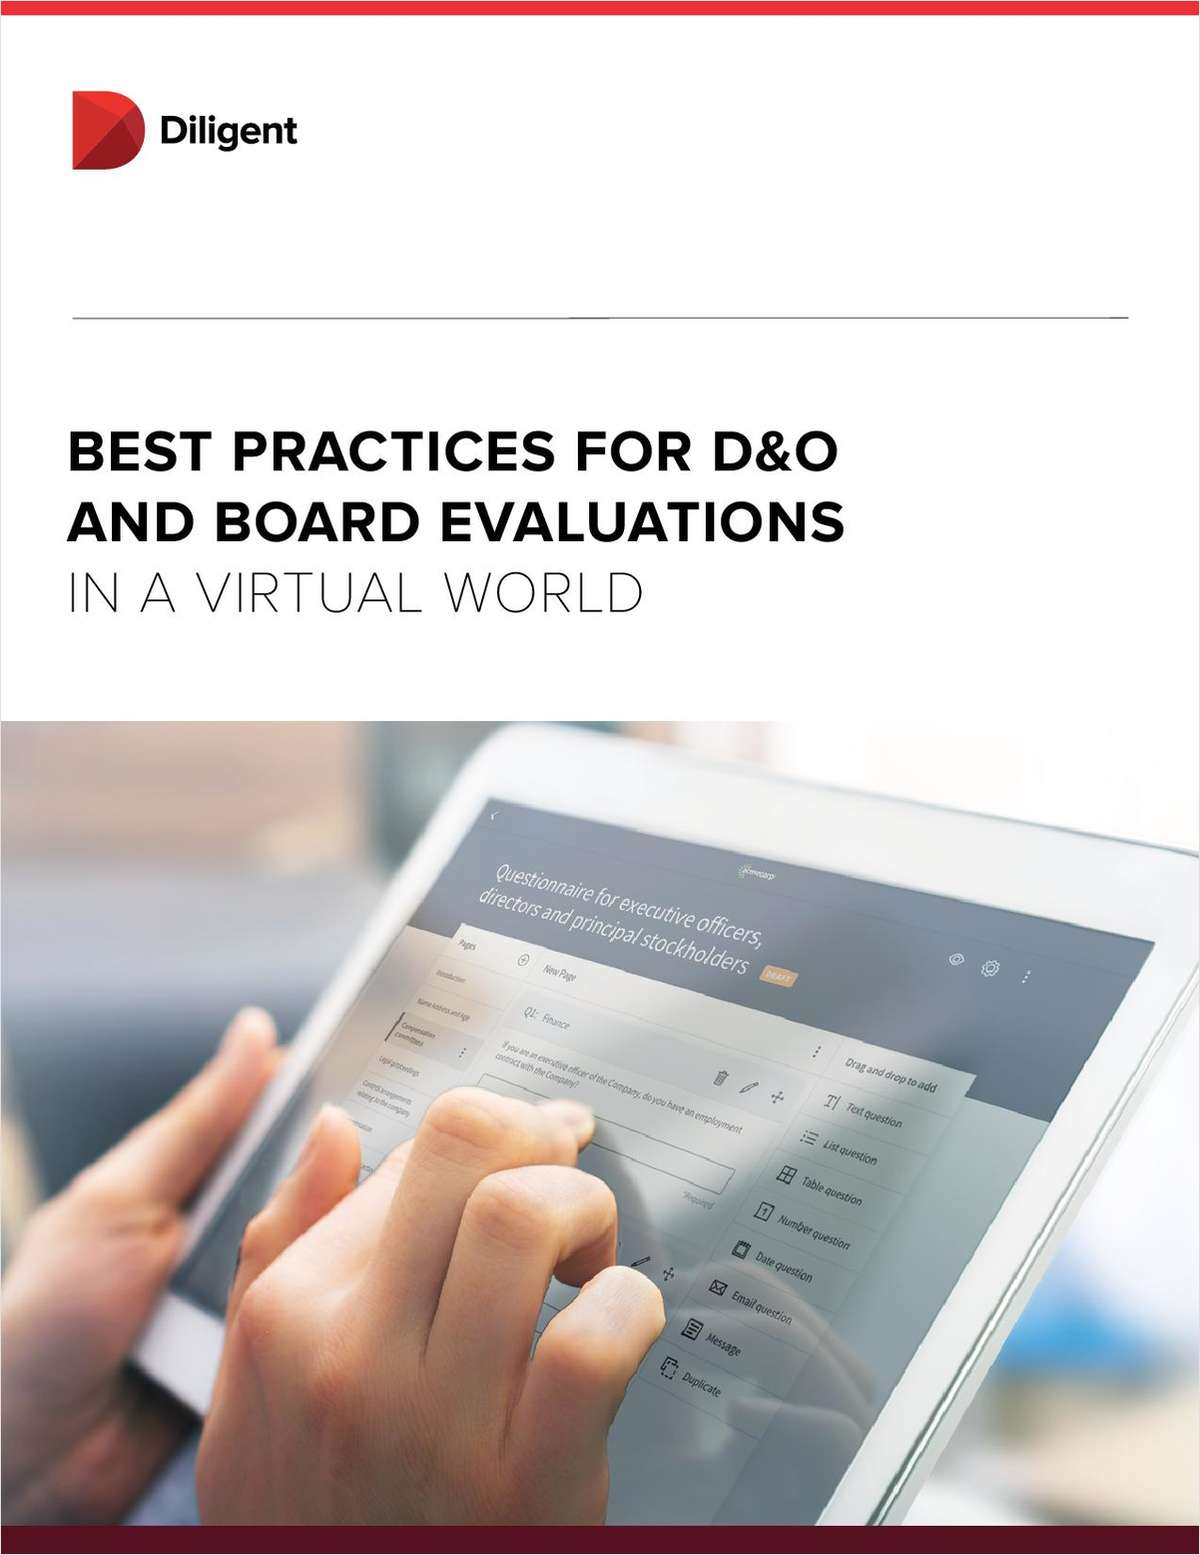 Best Practices For D&O and Board Evaluations In A Virtual World